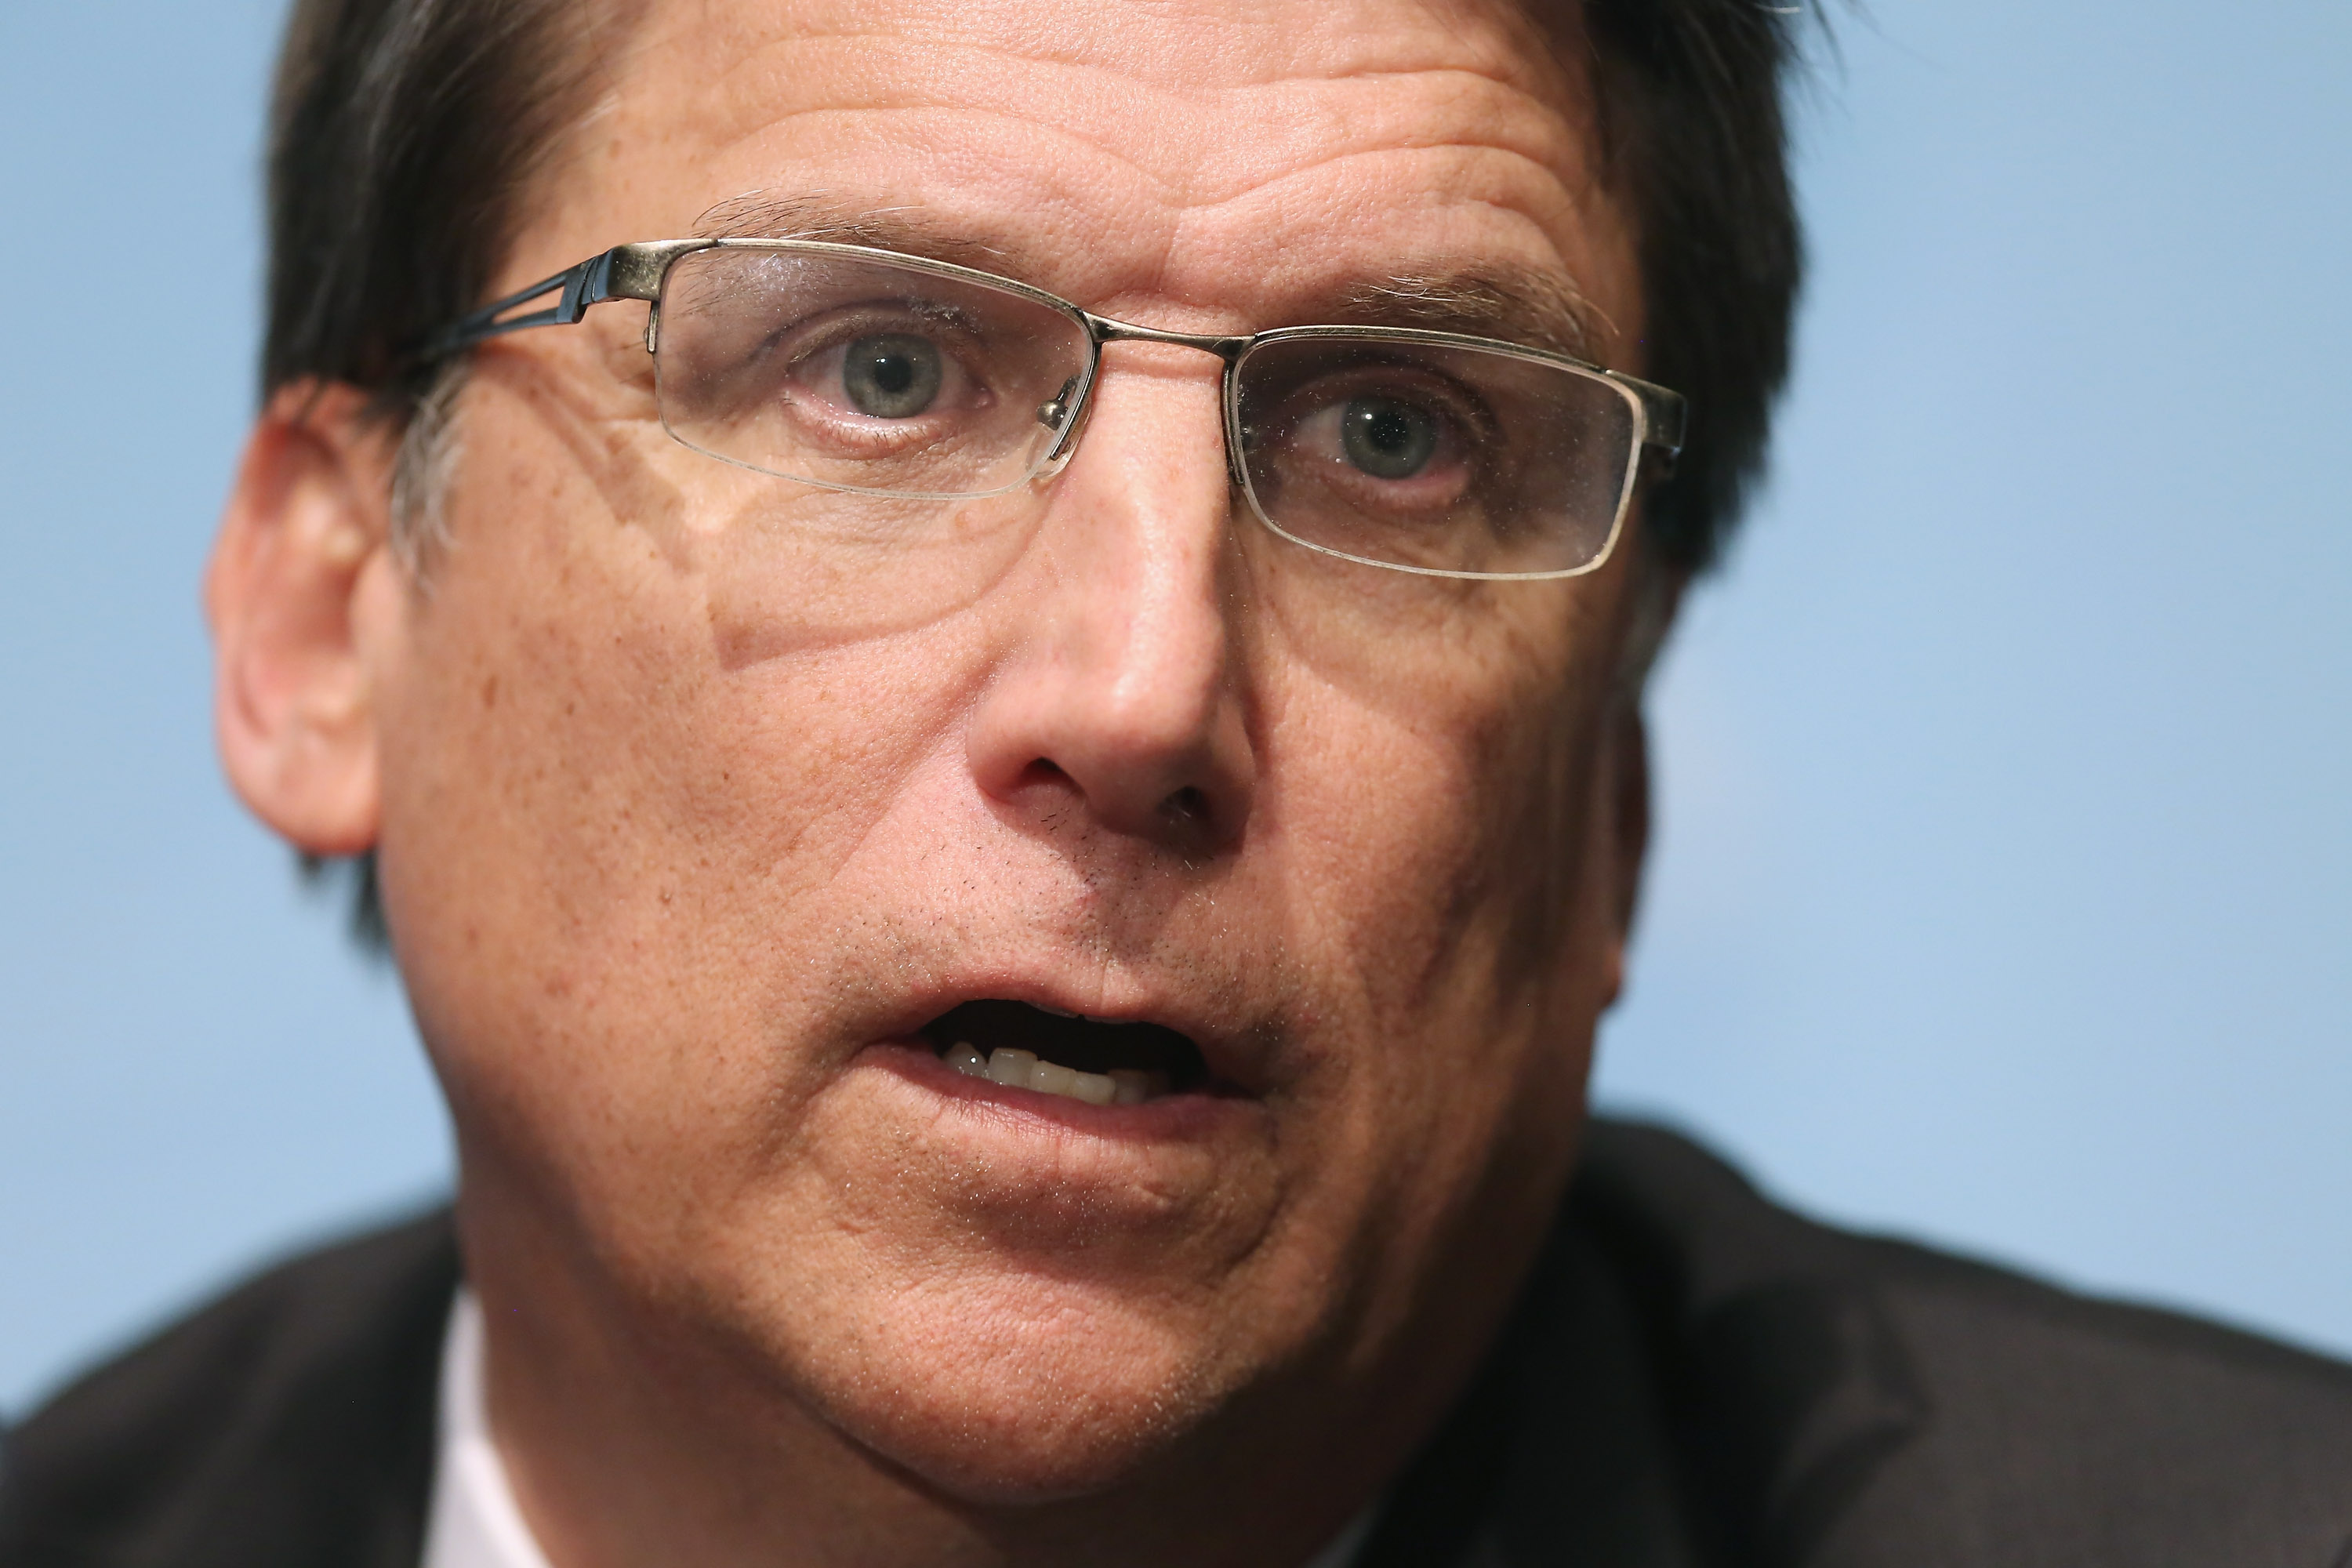 North Carolina Governor Pat McCrory holds a news conference with fellow members of the Republican Governors Association at the U.S. Chamber of Commerce in Washington, D.C., on Feb. 23, 2015.